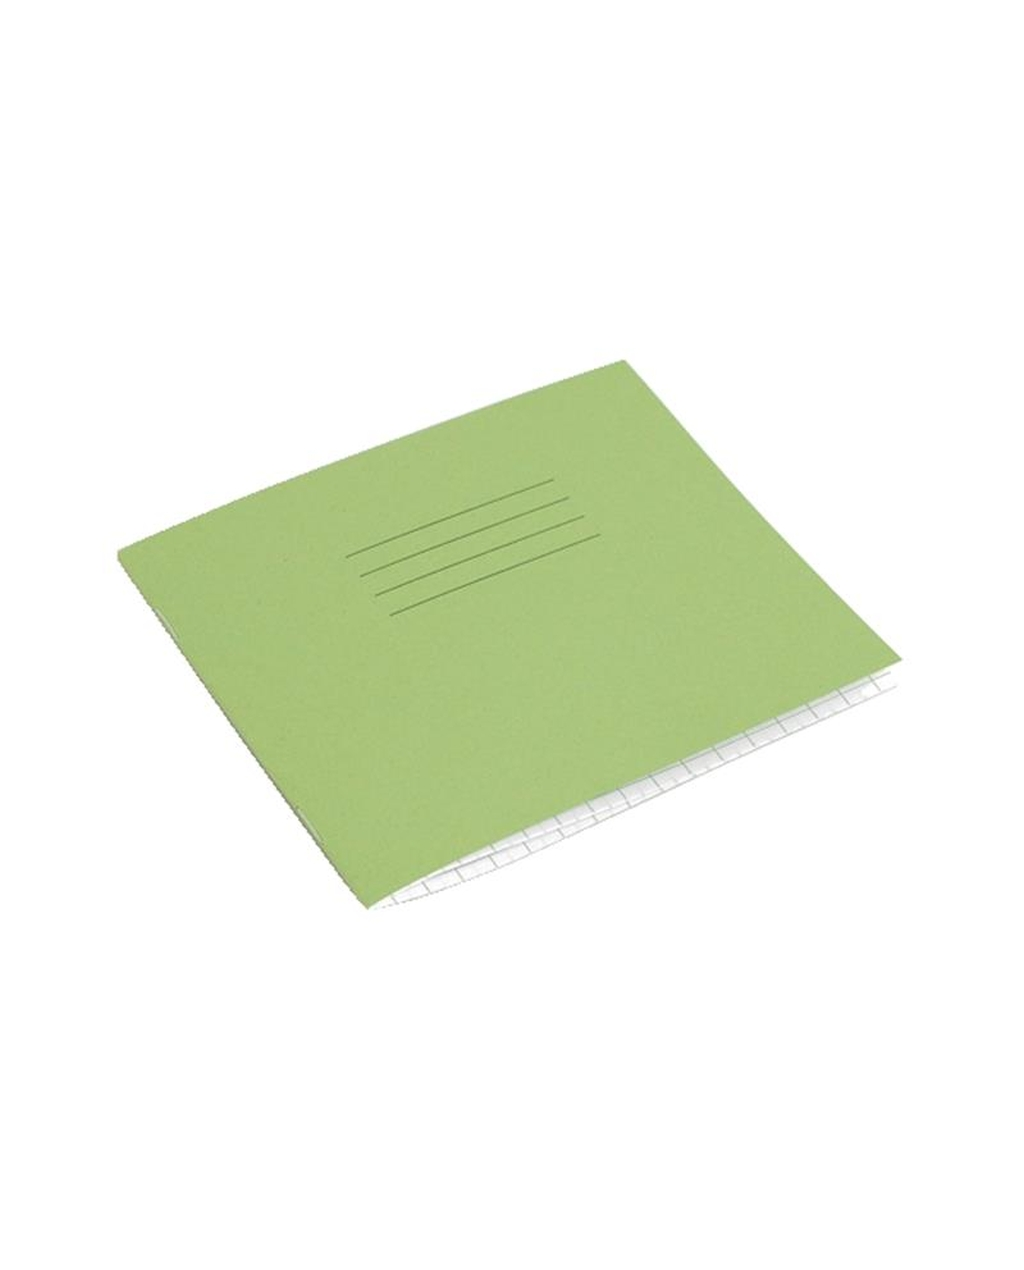 Exercise Book 5.25 x 6.5 (133 x 165mm) Light Green Cover 10mm Squares 24 Pages